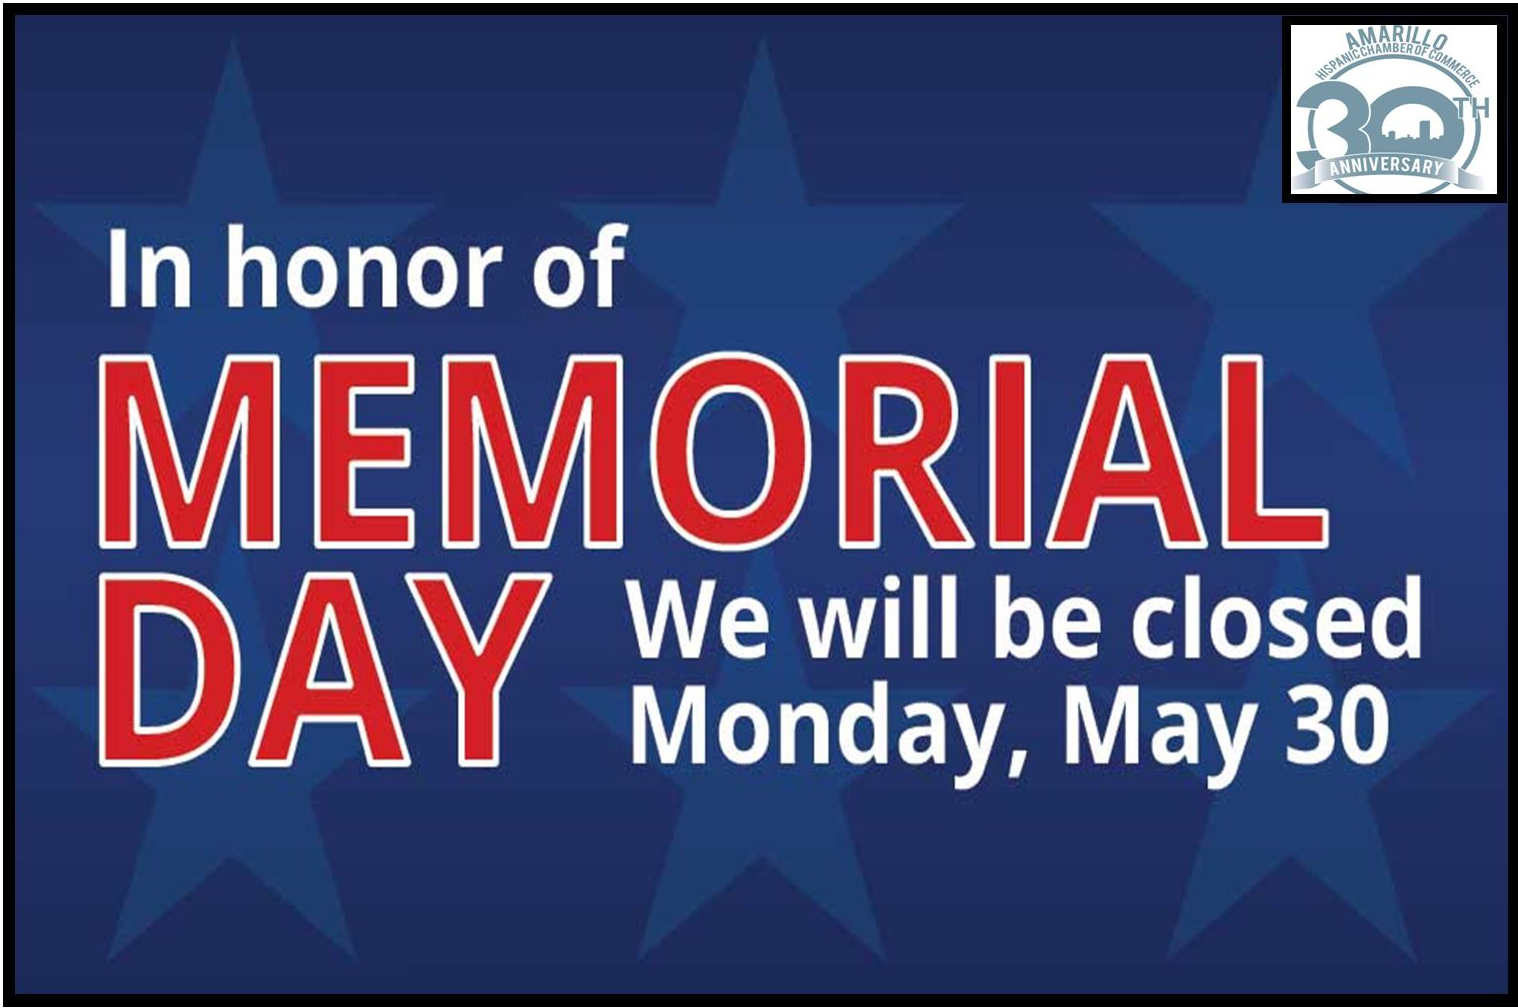 Closed for Memorial Day @ Amarillo Hispanic Chambers of Commerce | Amarillo | Texas | United States